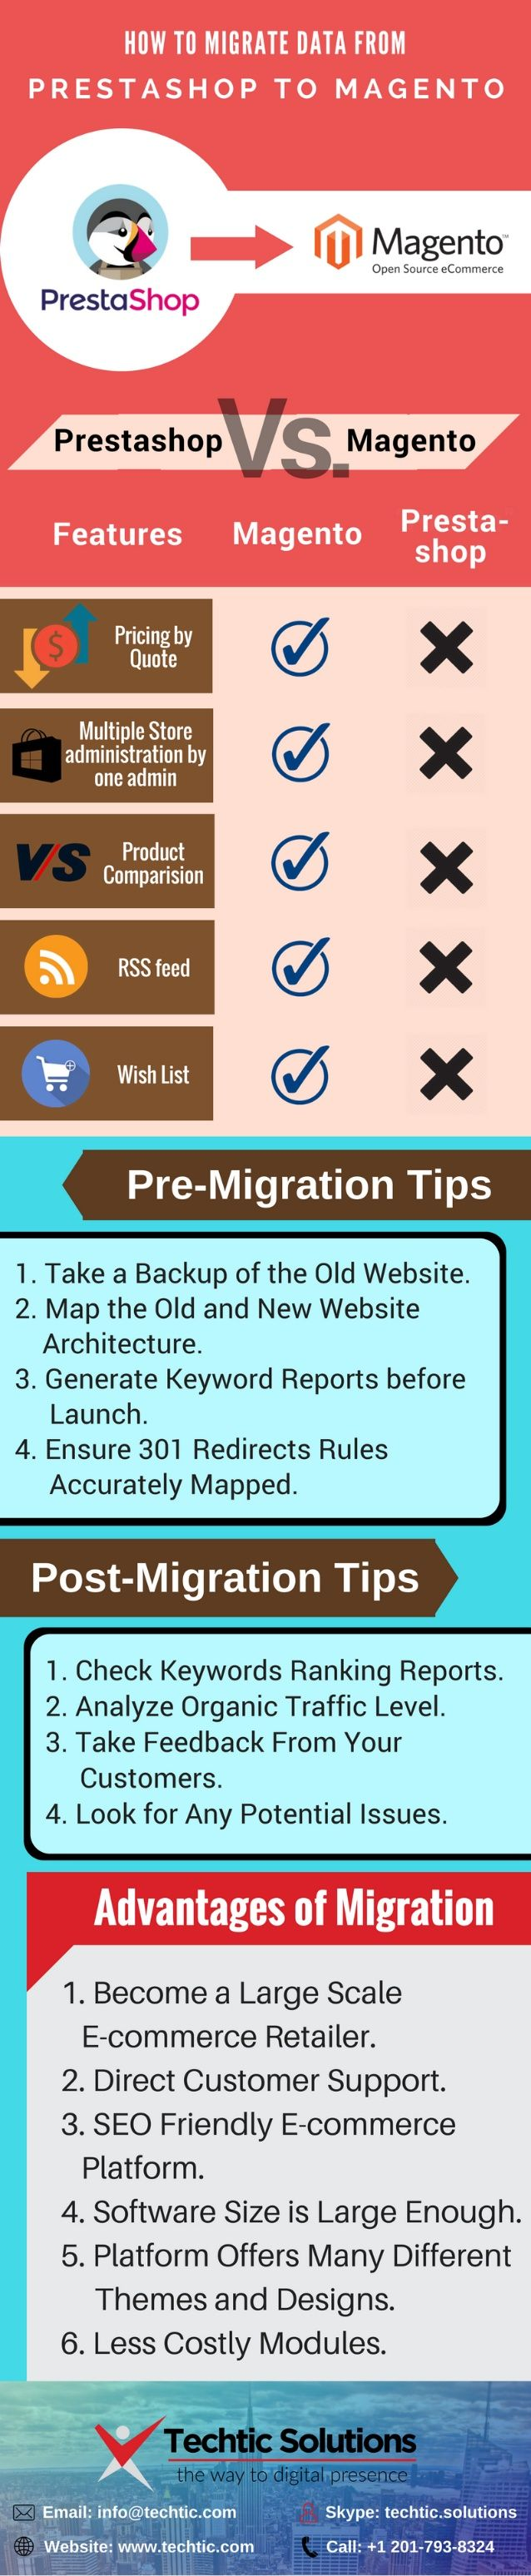 How to Migrate Data from Prestashop to Magento eCommerce Store - . If you want to migrate your store into Magento eCommerce store or any other eCommerce store call us @ +1 201-793-8324 or visit us @ https://www.techtic.com/magento-development-company/   #Magento #MagentoDevelopment #MagentoDevelopmentServices #MagentoDevelopmentCompany #MagentoDeveloper #HireMagentoDeveloper